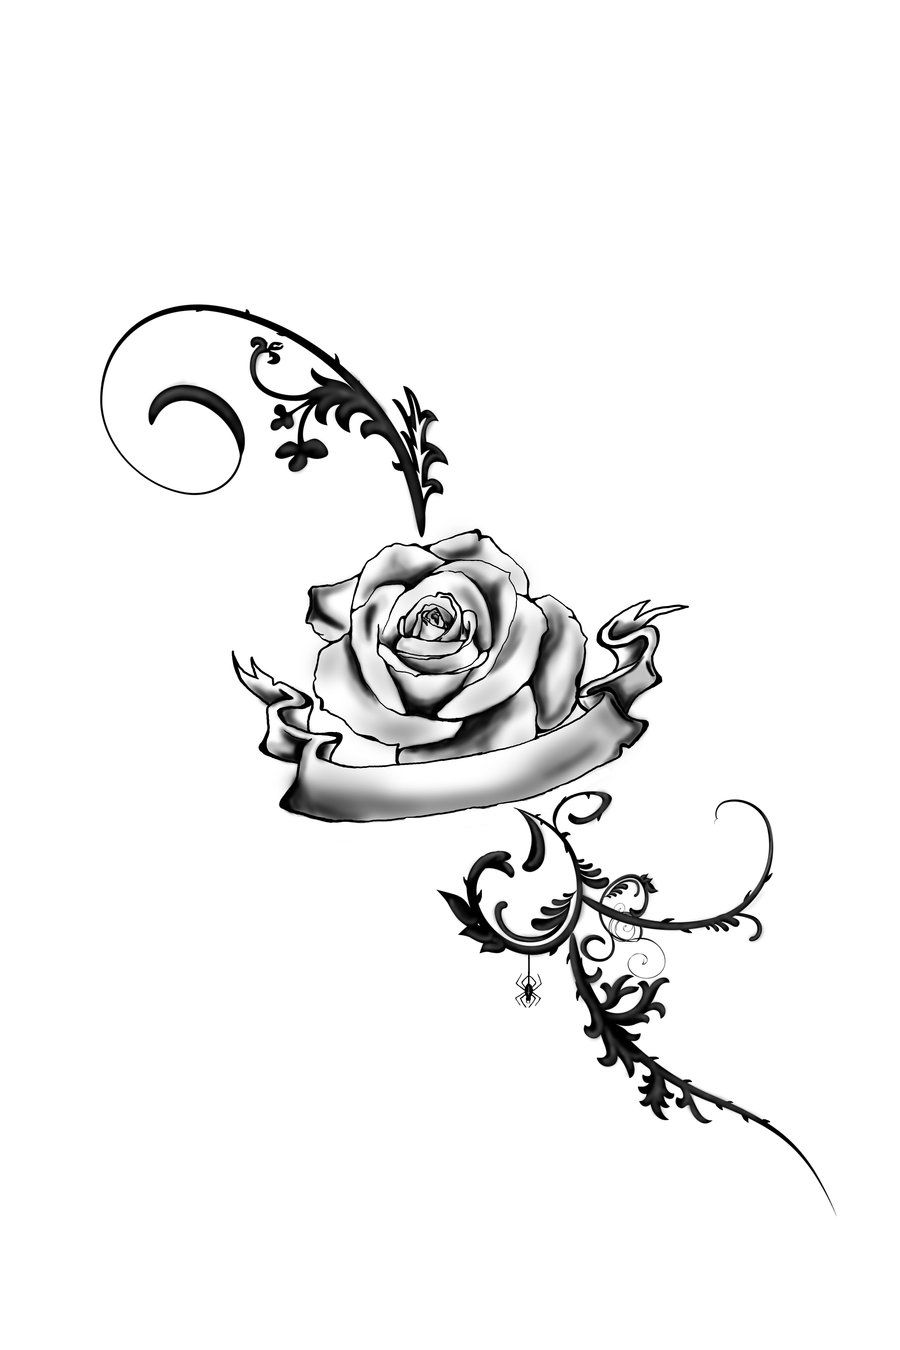 Foot Tattoo Rose By Juliavonmorque On Deviantart Rose Vine Tattoos Tattoos Rose Tattoo Foot